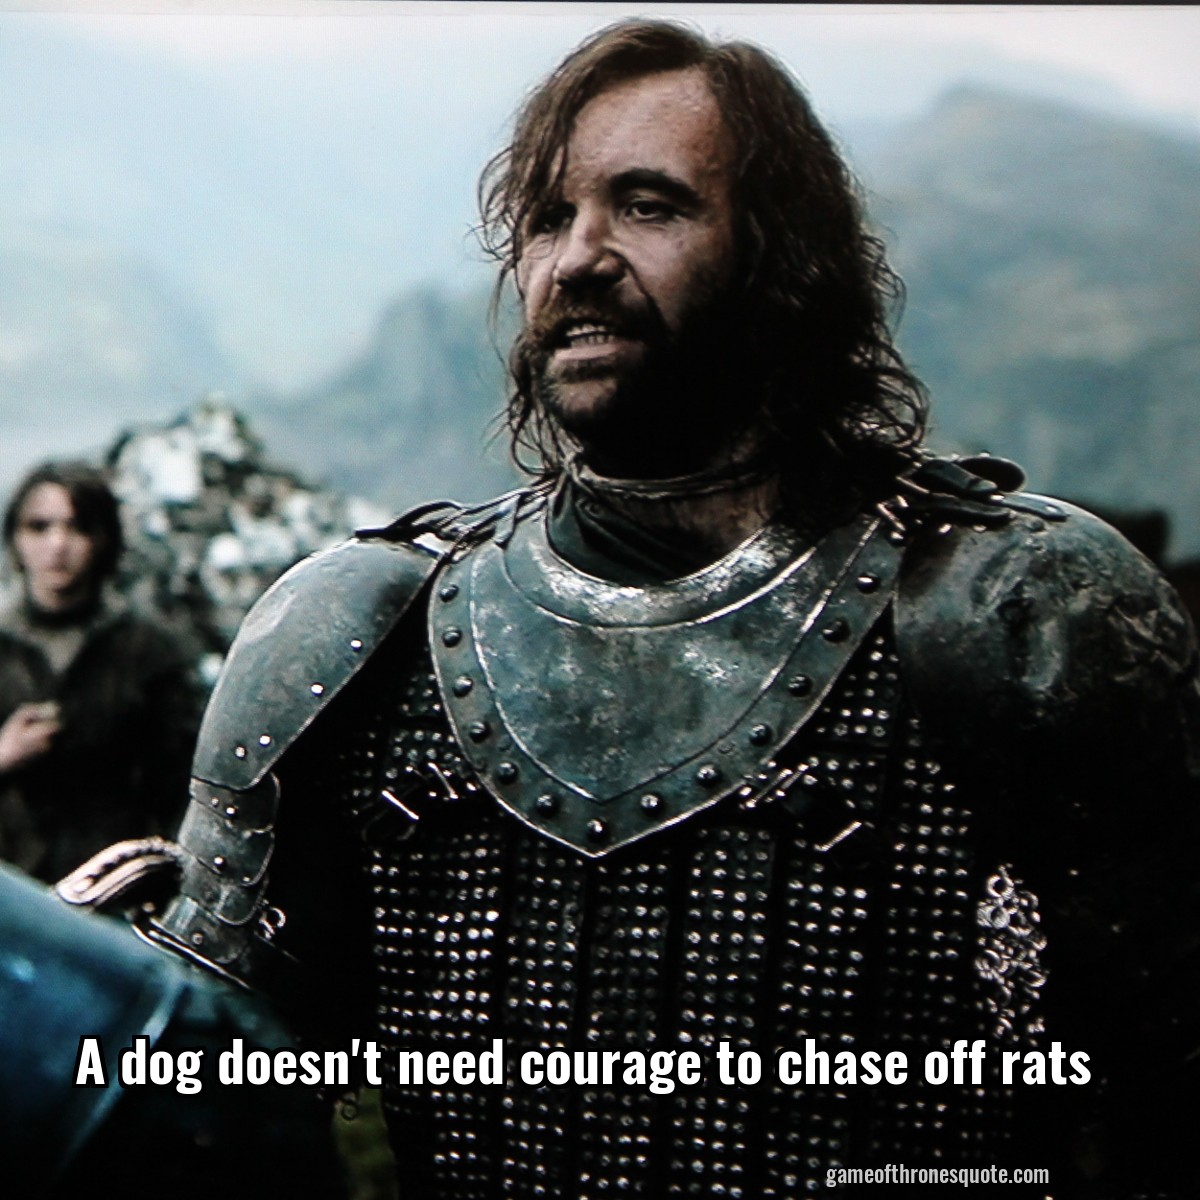 A dog doesn't need courage to chase off rats